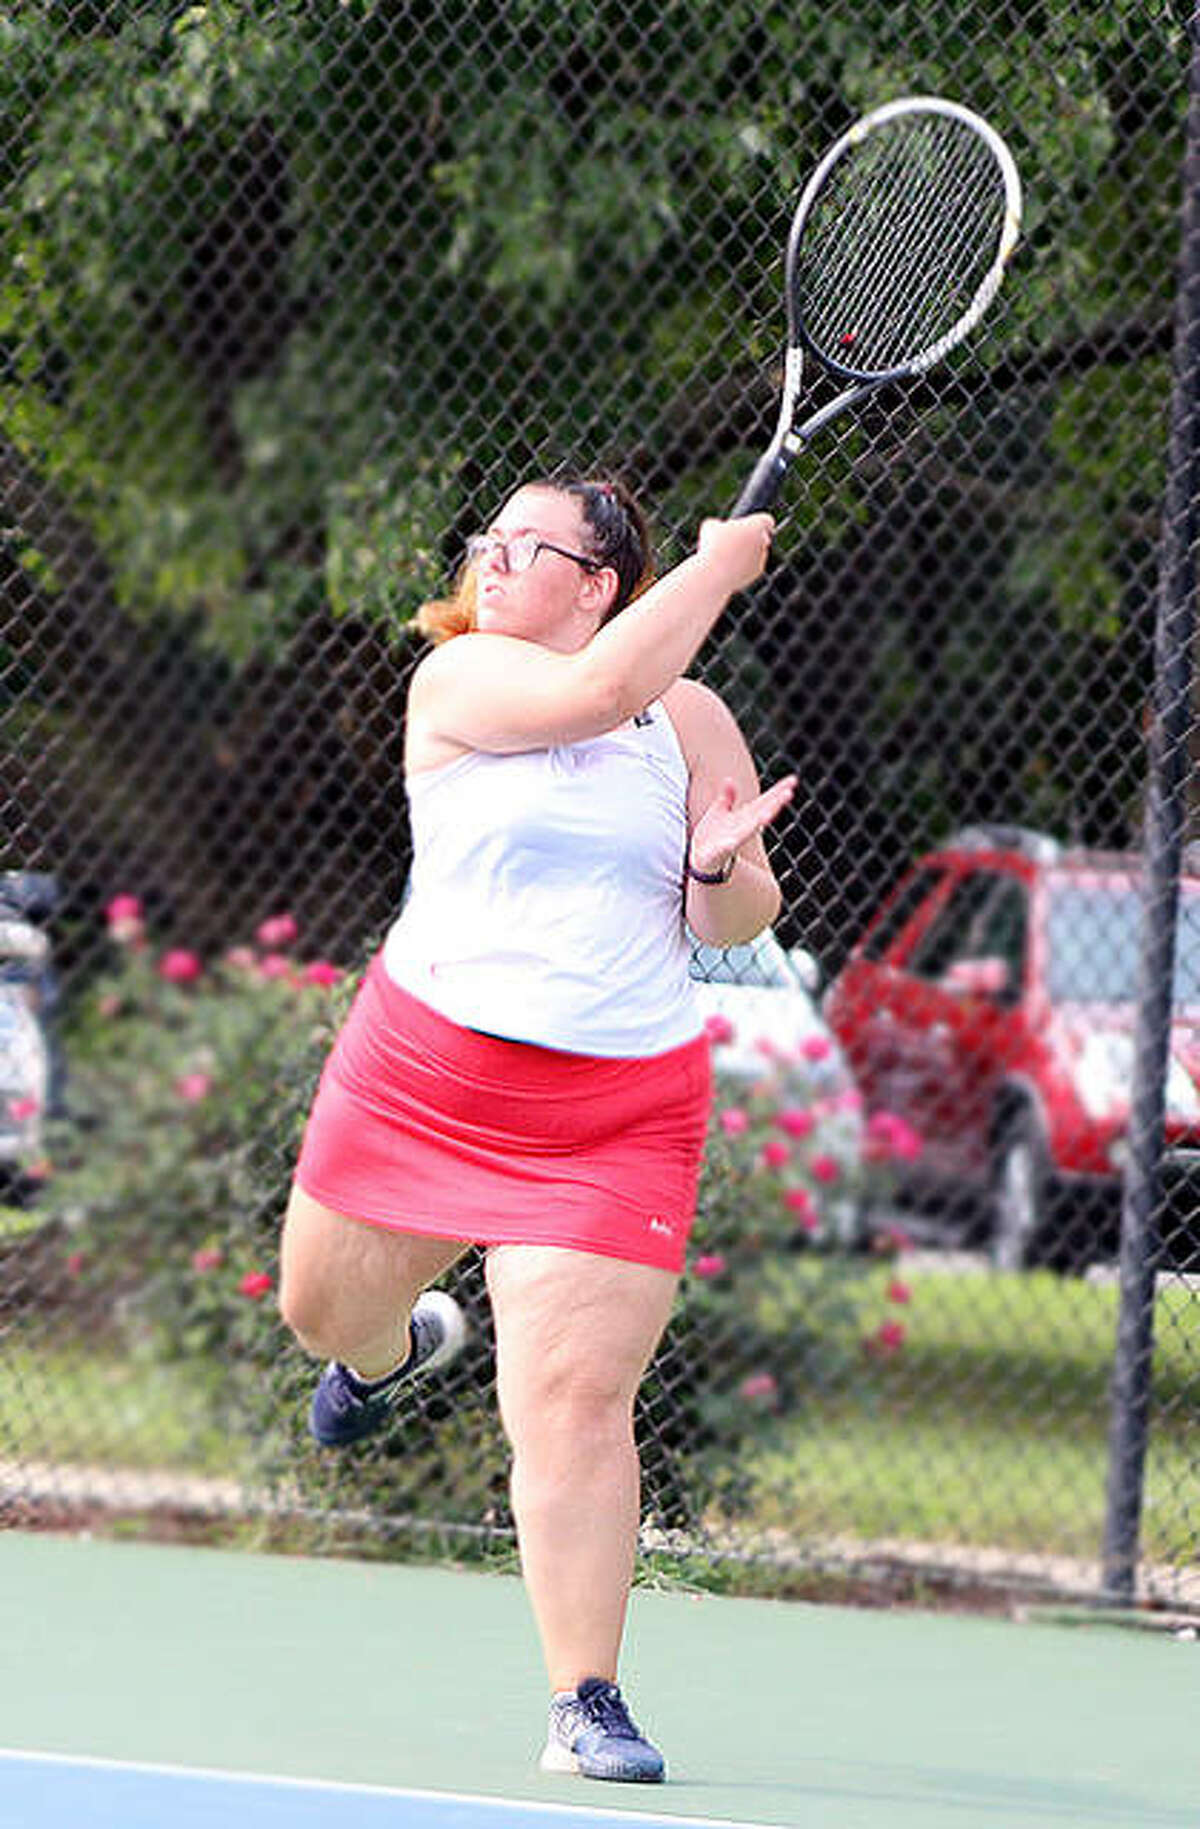 Alton's Lydia Criveau goes high to make a return in a match earlier this season at the Simpson Tennis Center.